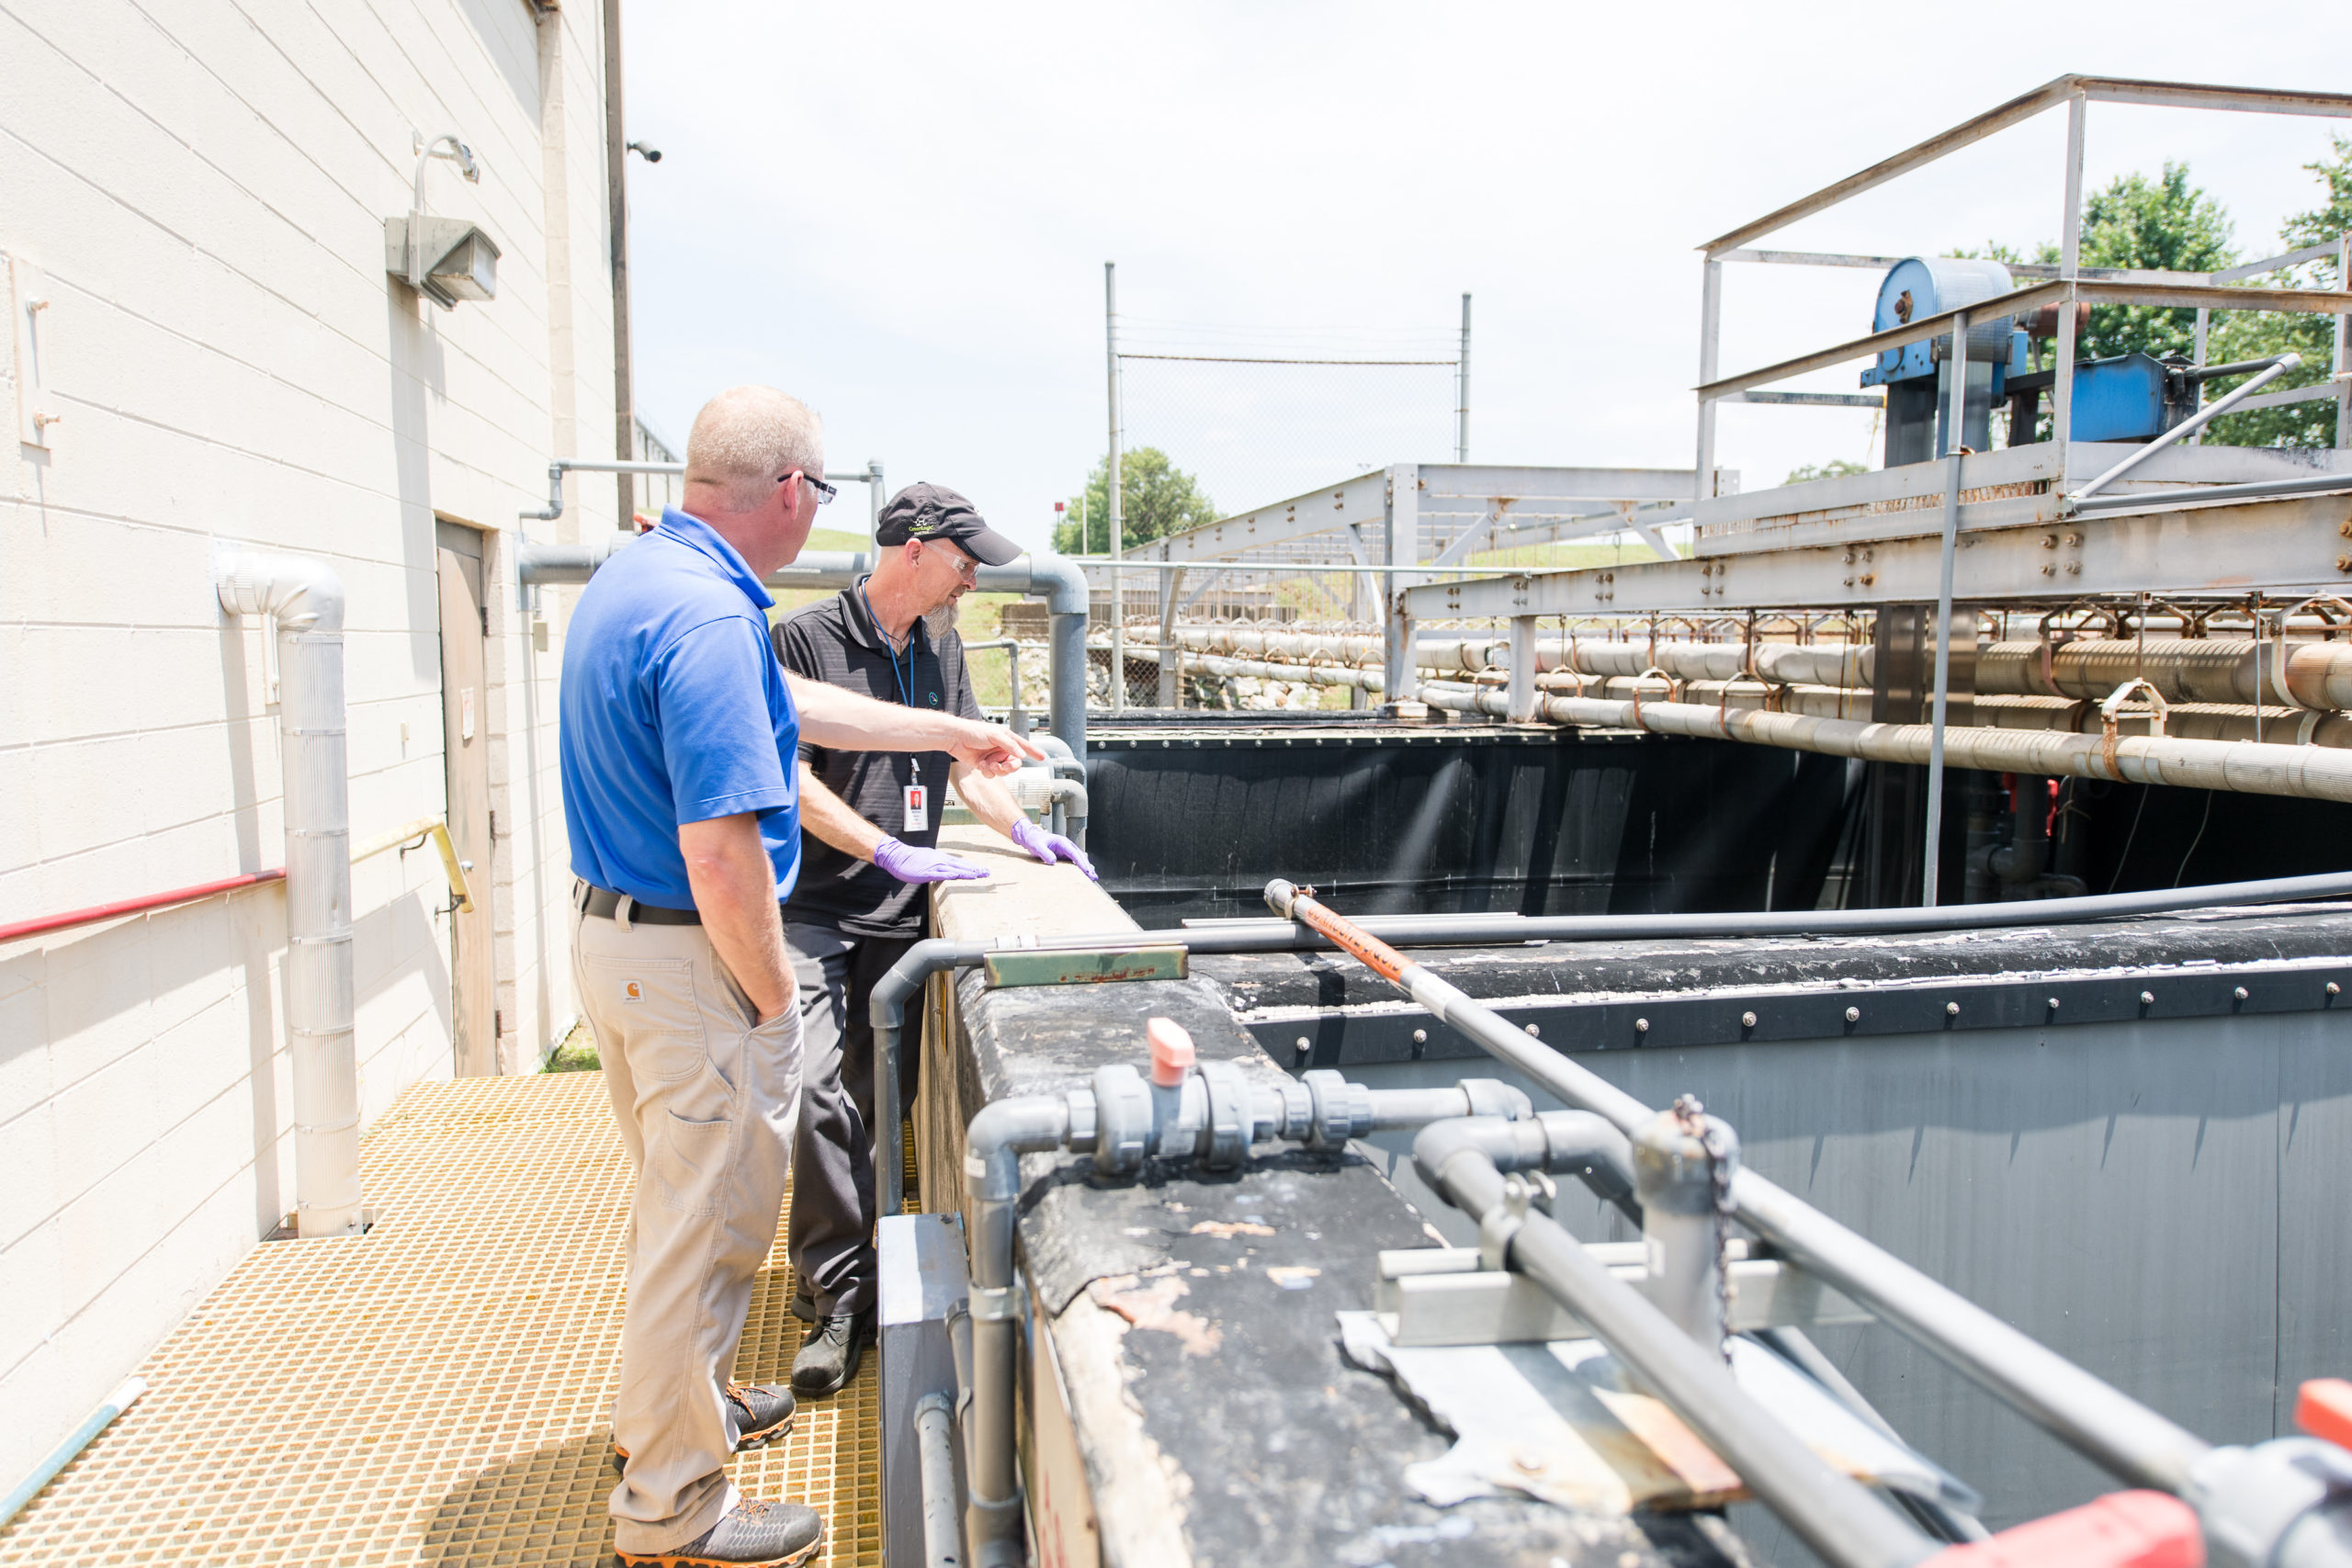 Turbidity in Industrial Wastewater. What is it and Why Measure?